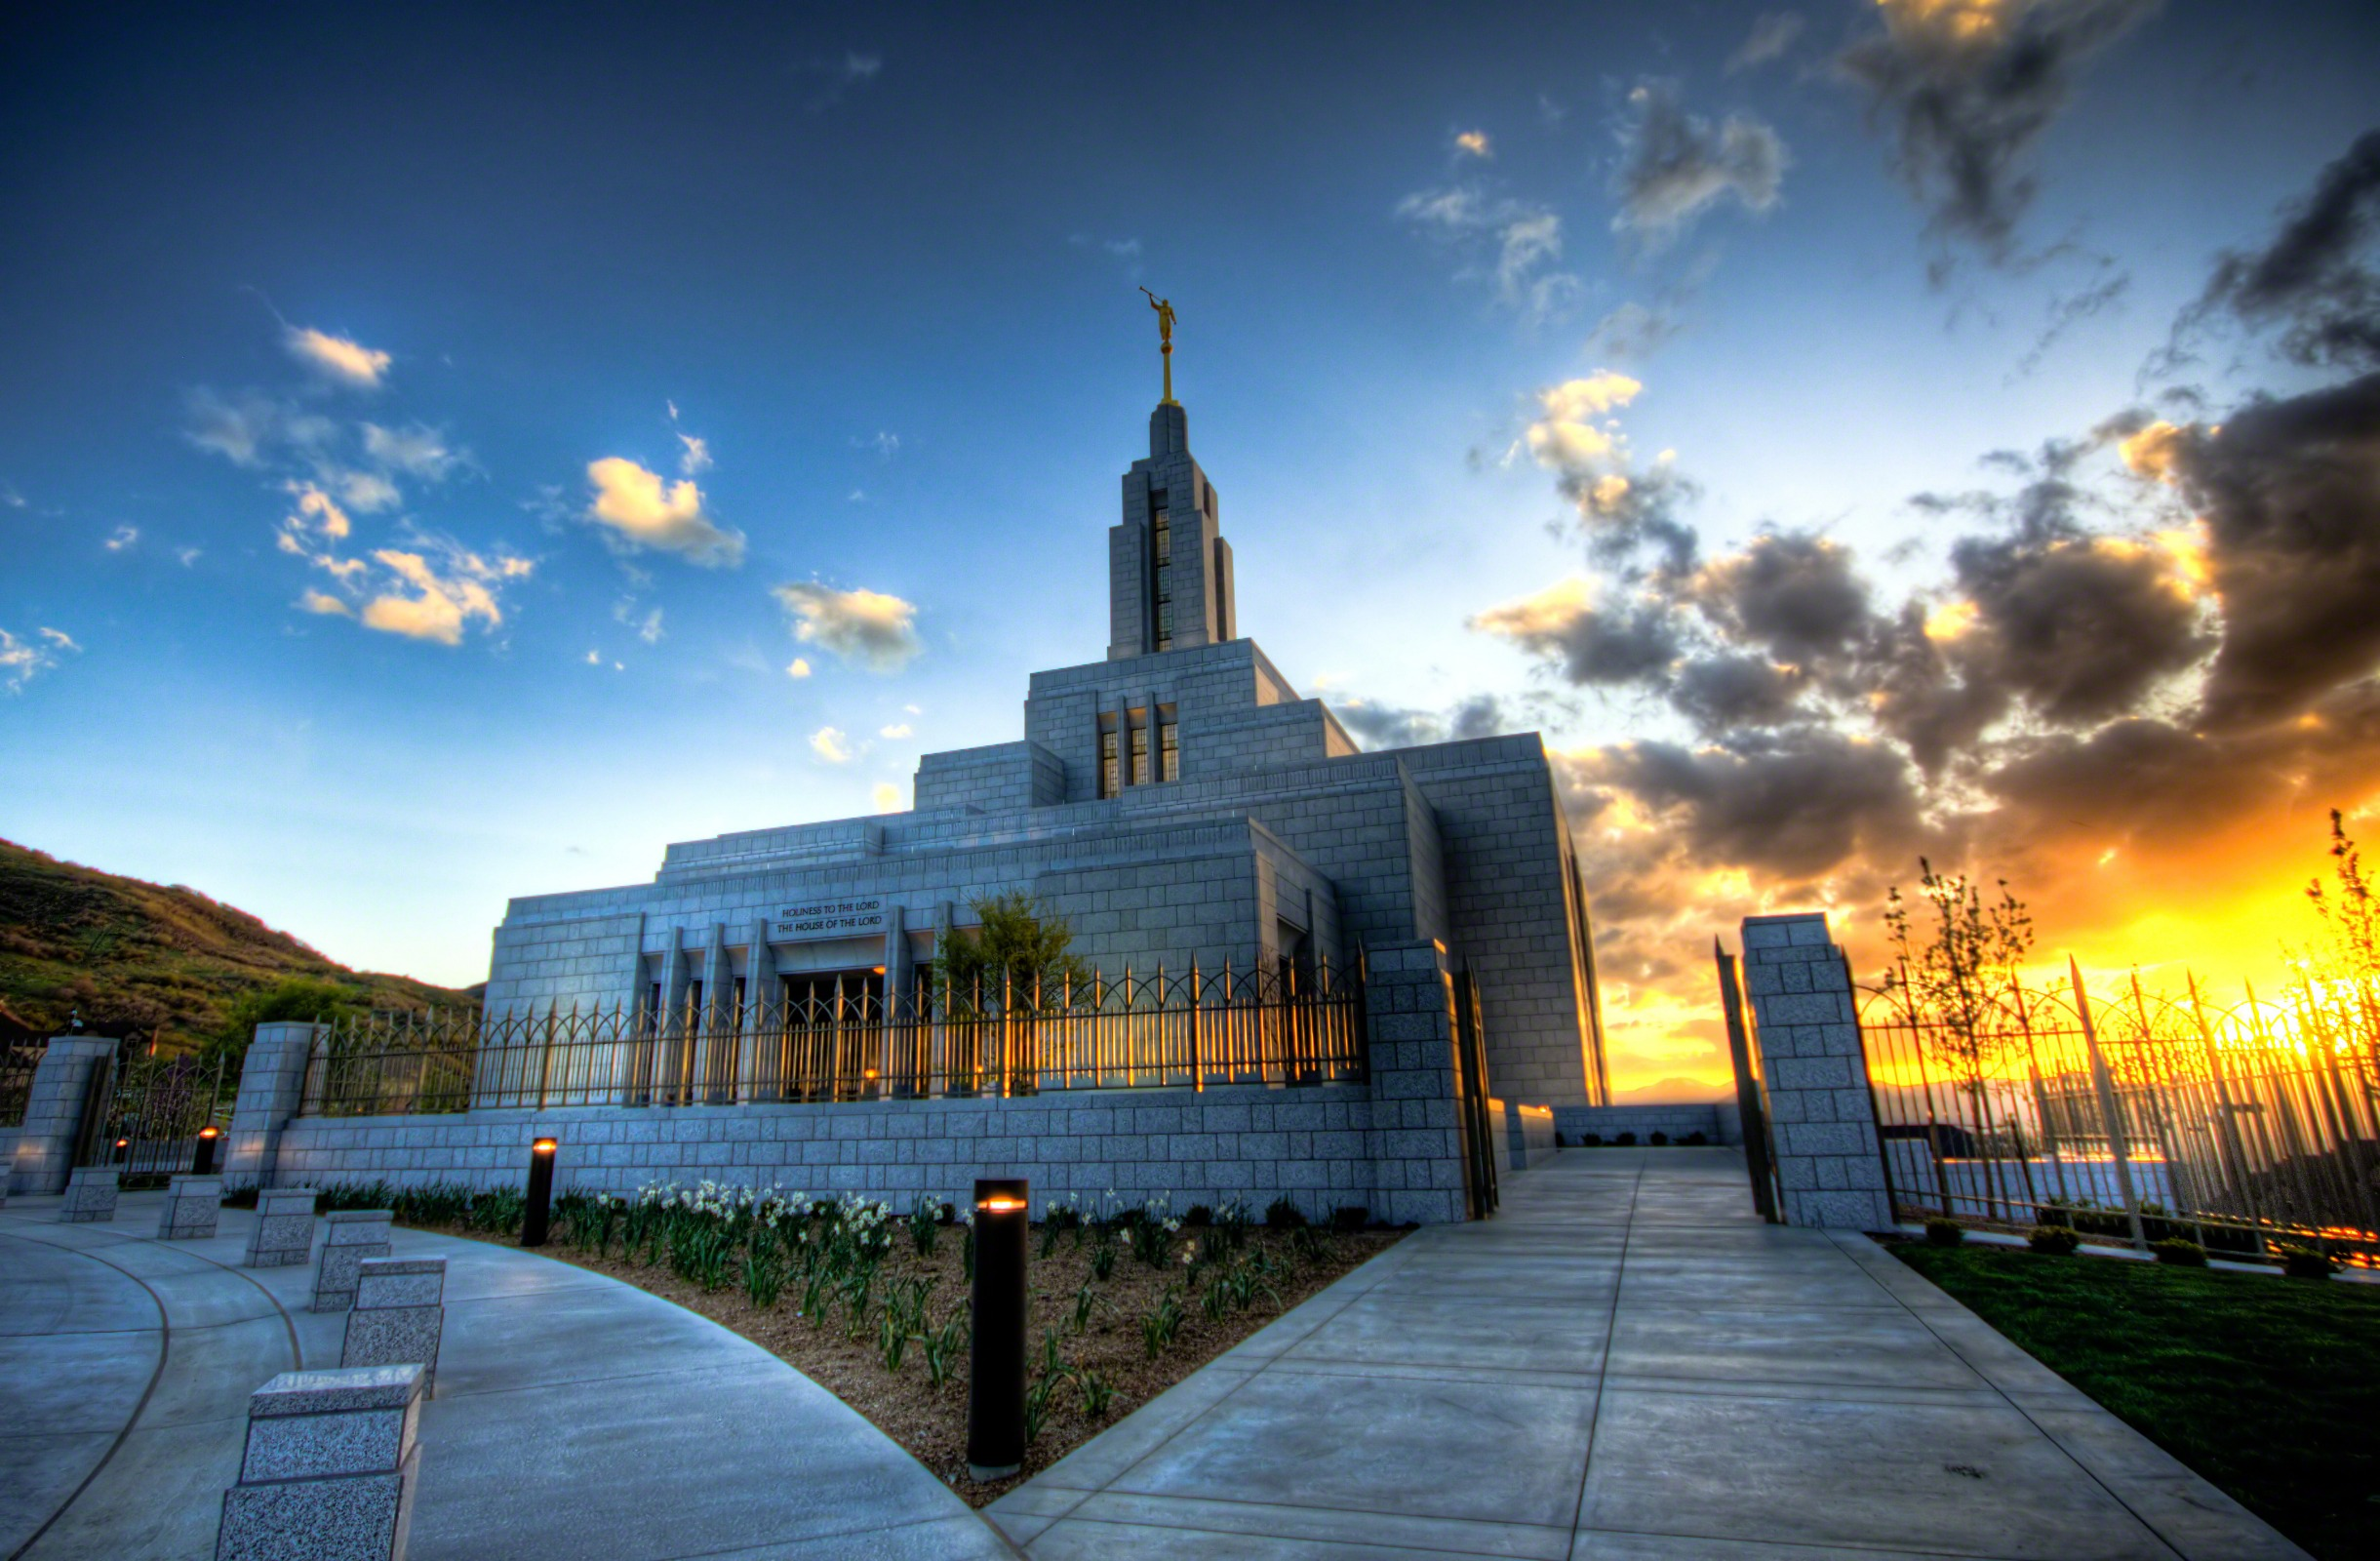 The draper utah temple at sunset - Lds temple wallpaper ...